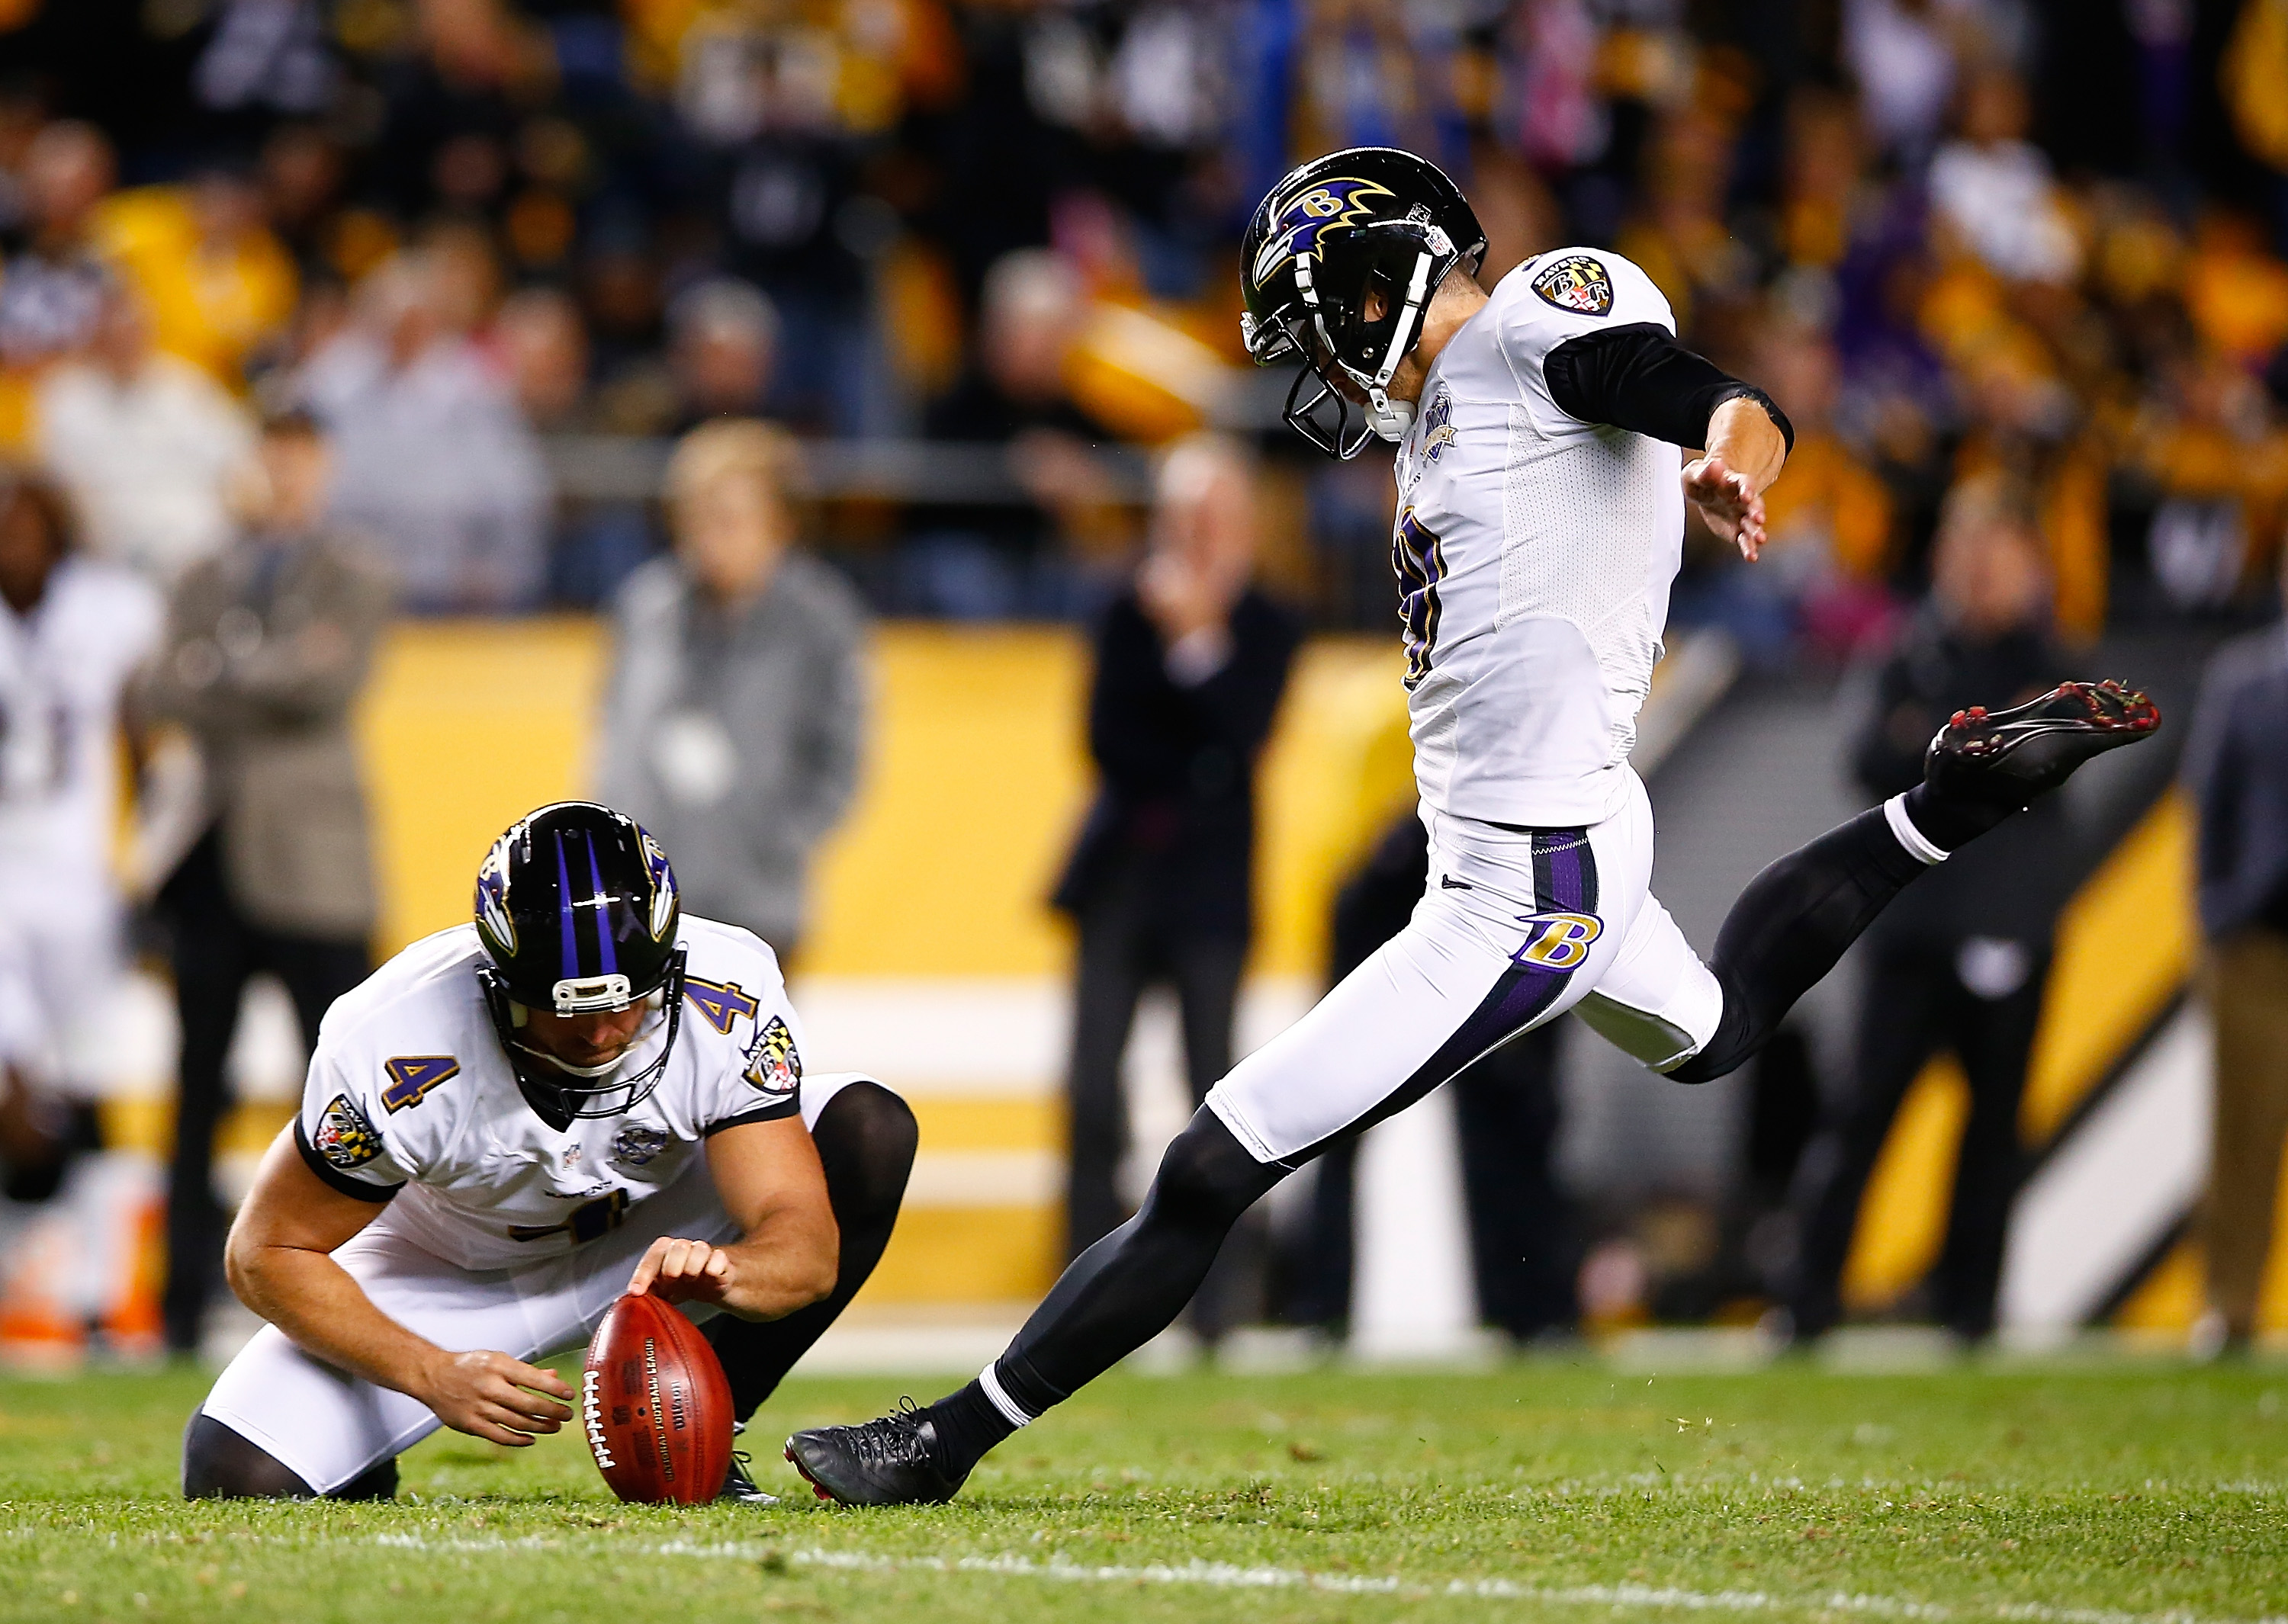 66-yard FG bomb from Tucker and Ravens breaks Lions hearts, 19-17